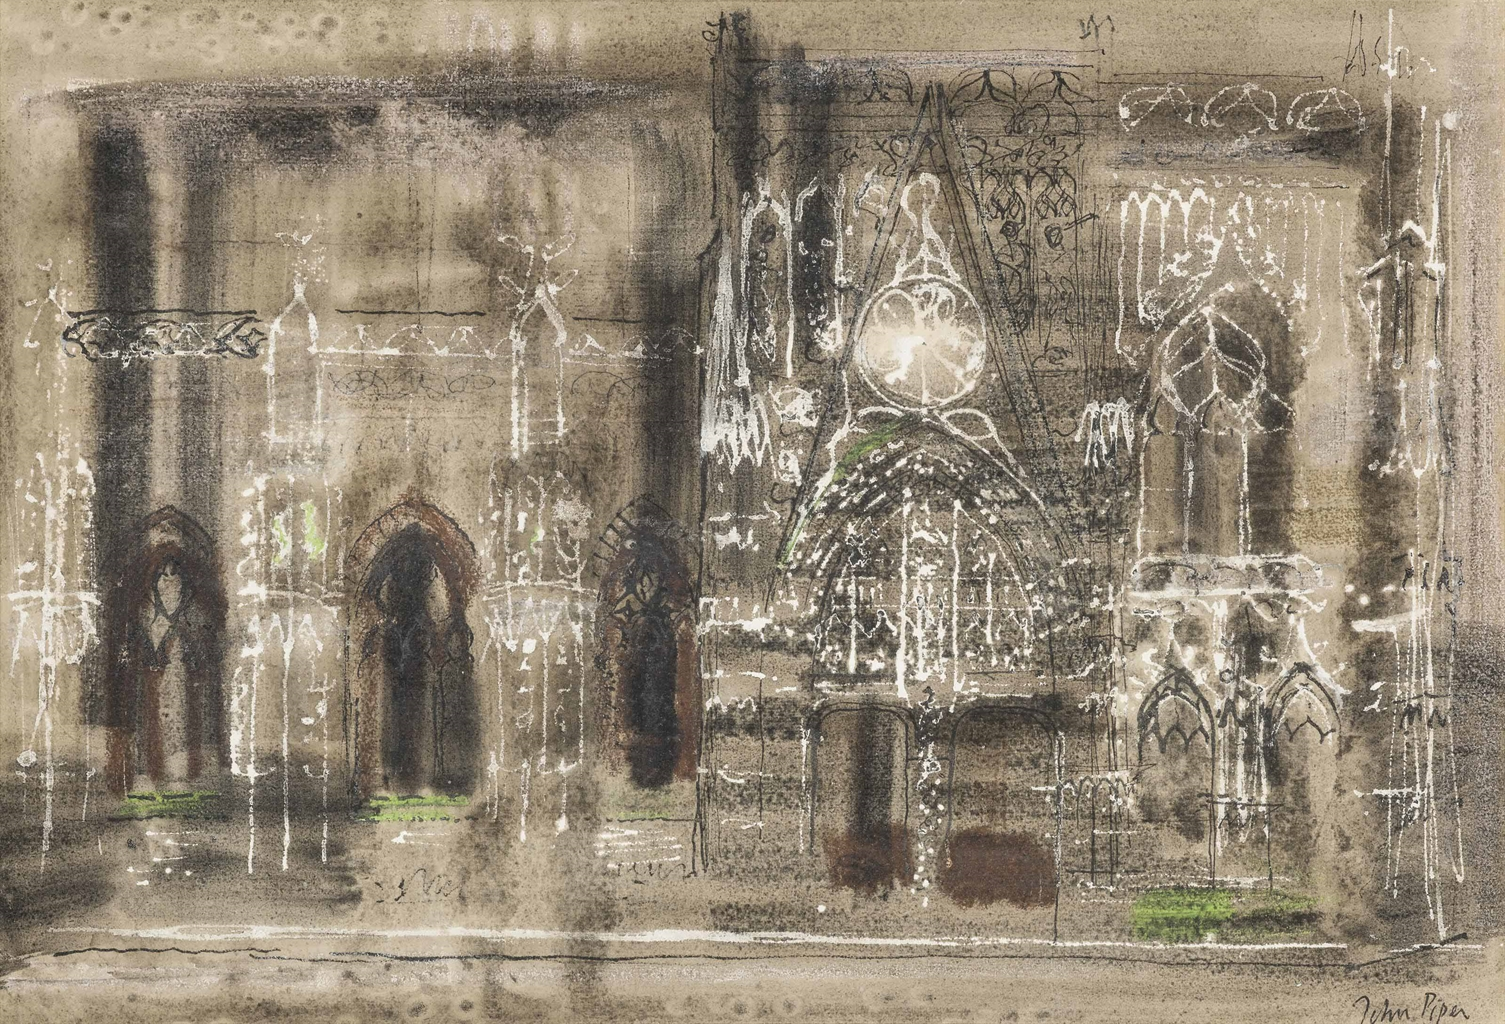 John Piper-Abbeville Cathedral-